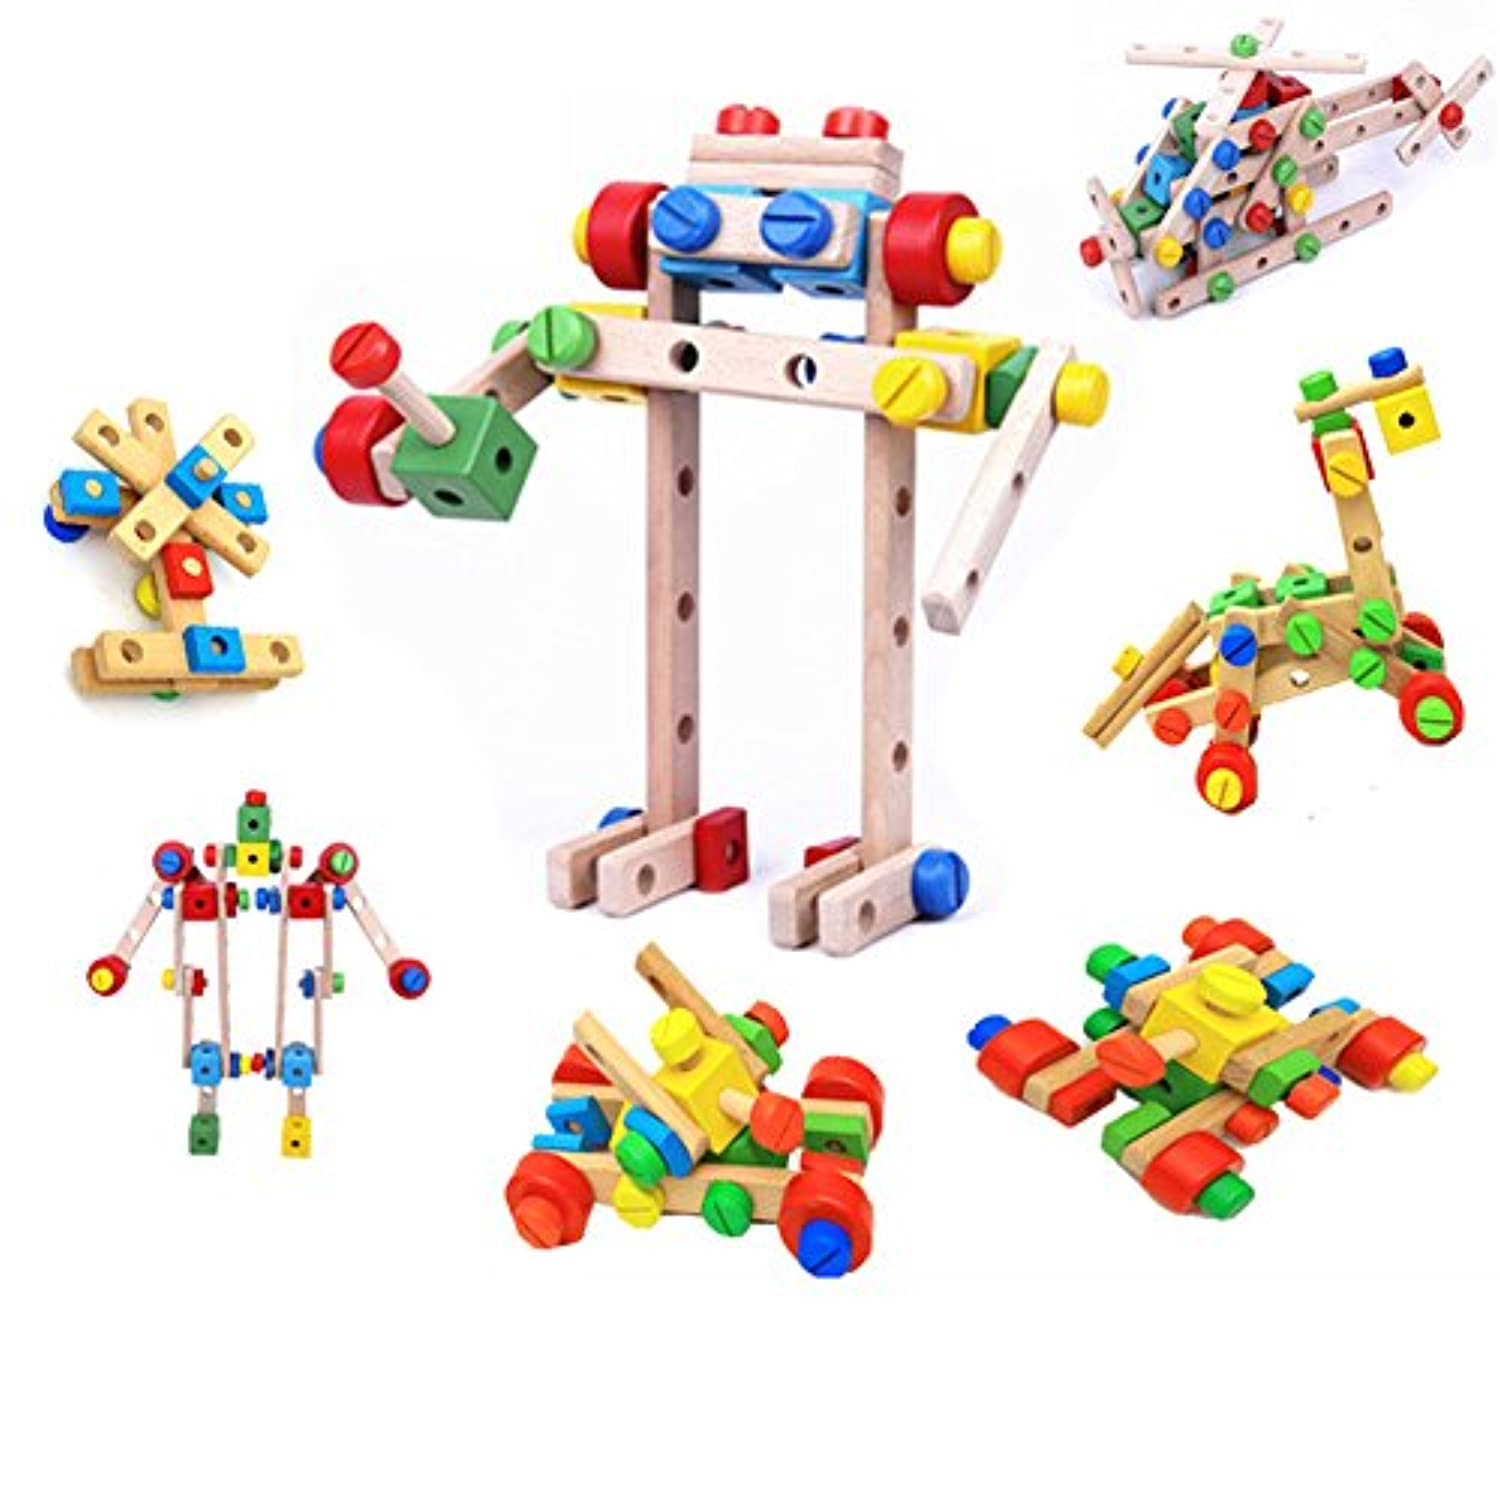 (Nut) - Xtone DIY Screw Block Wooden Combination Stacking Construction Early Learning Playing Toys Sets